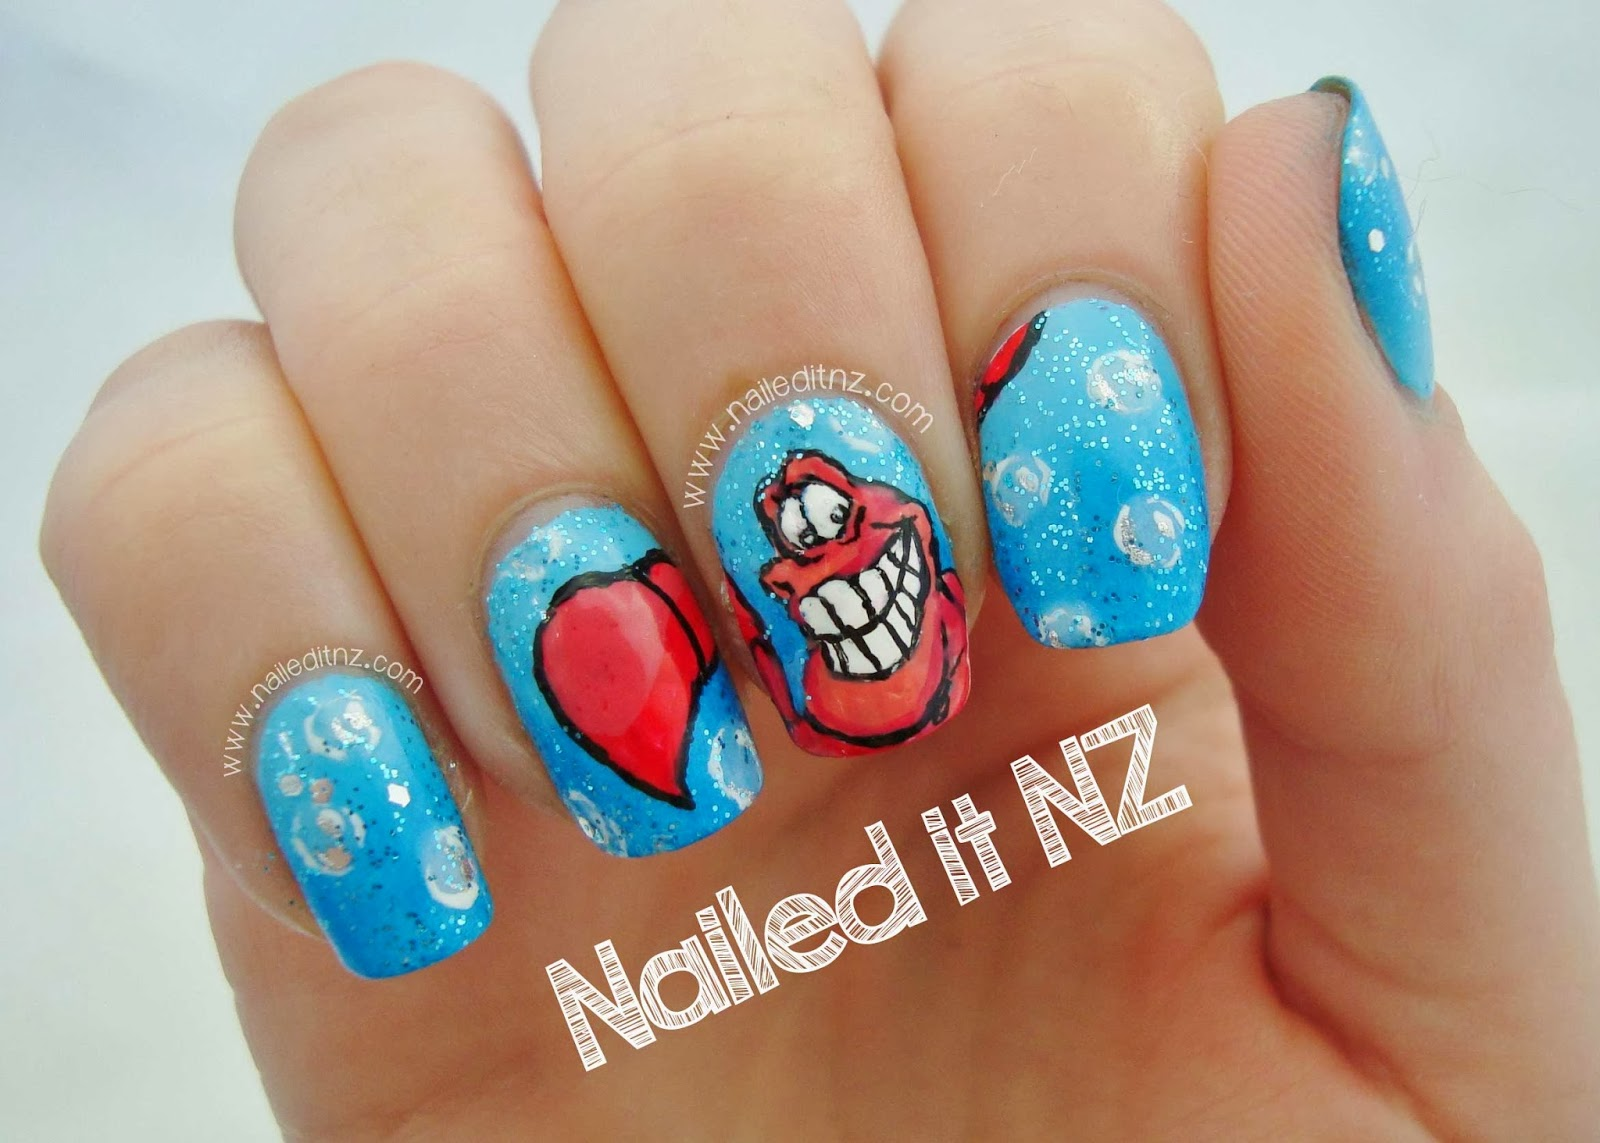 Disney Nail Art #4 - The Little Mermaid